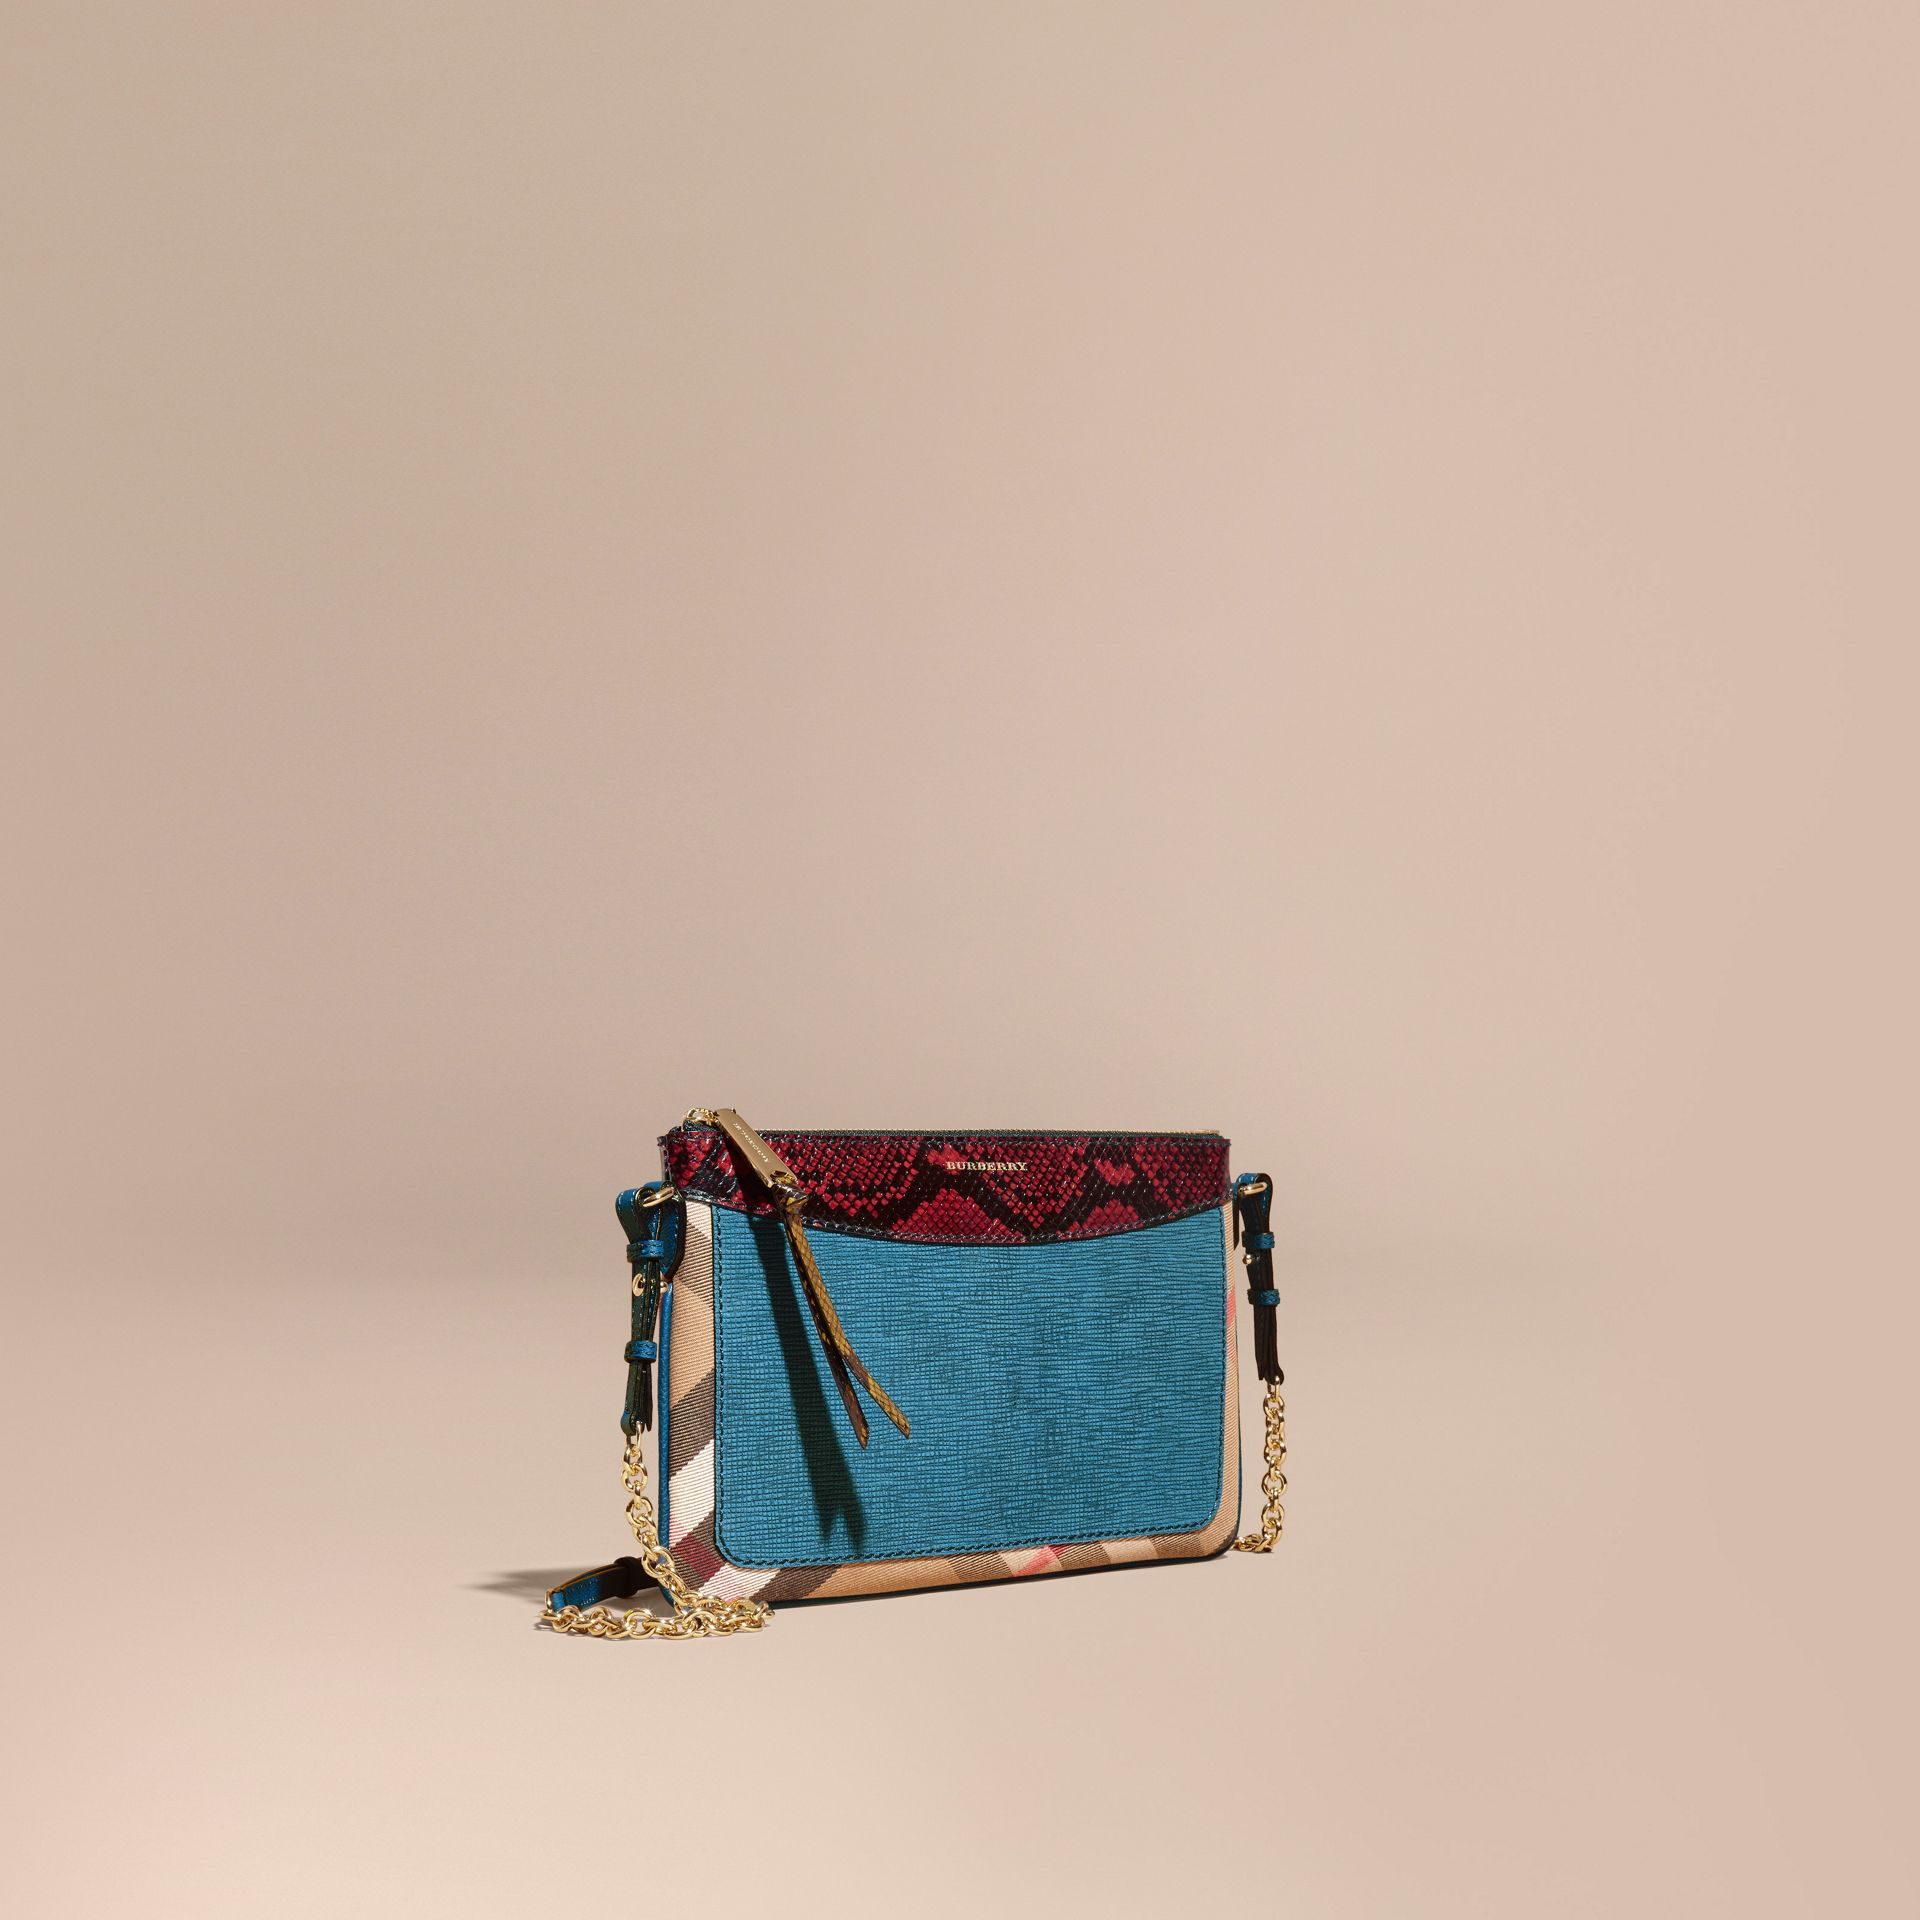 Leather, House Check and Snakeskin Clutch Bag in Peacock Blue - Women | Burberry - gallery image 1